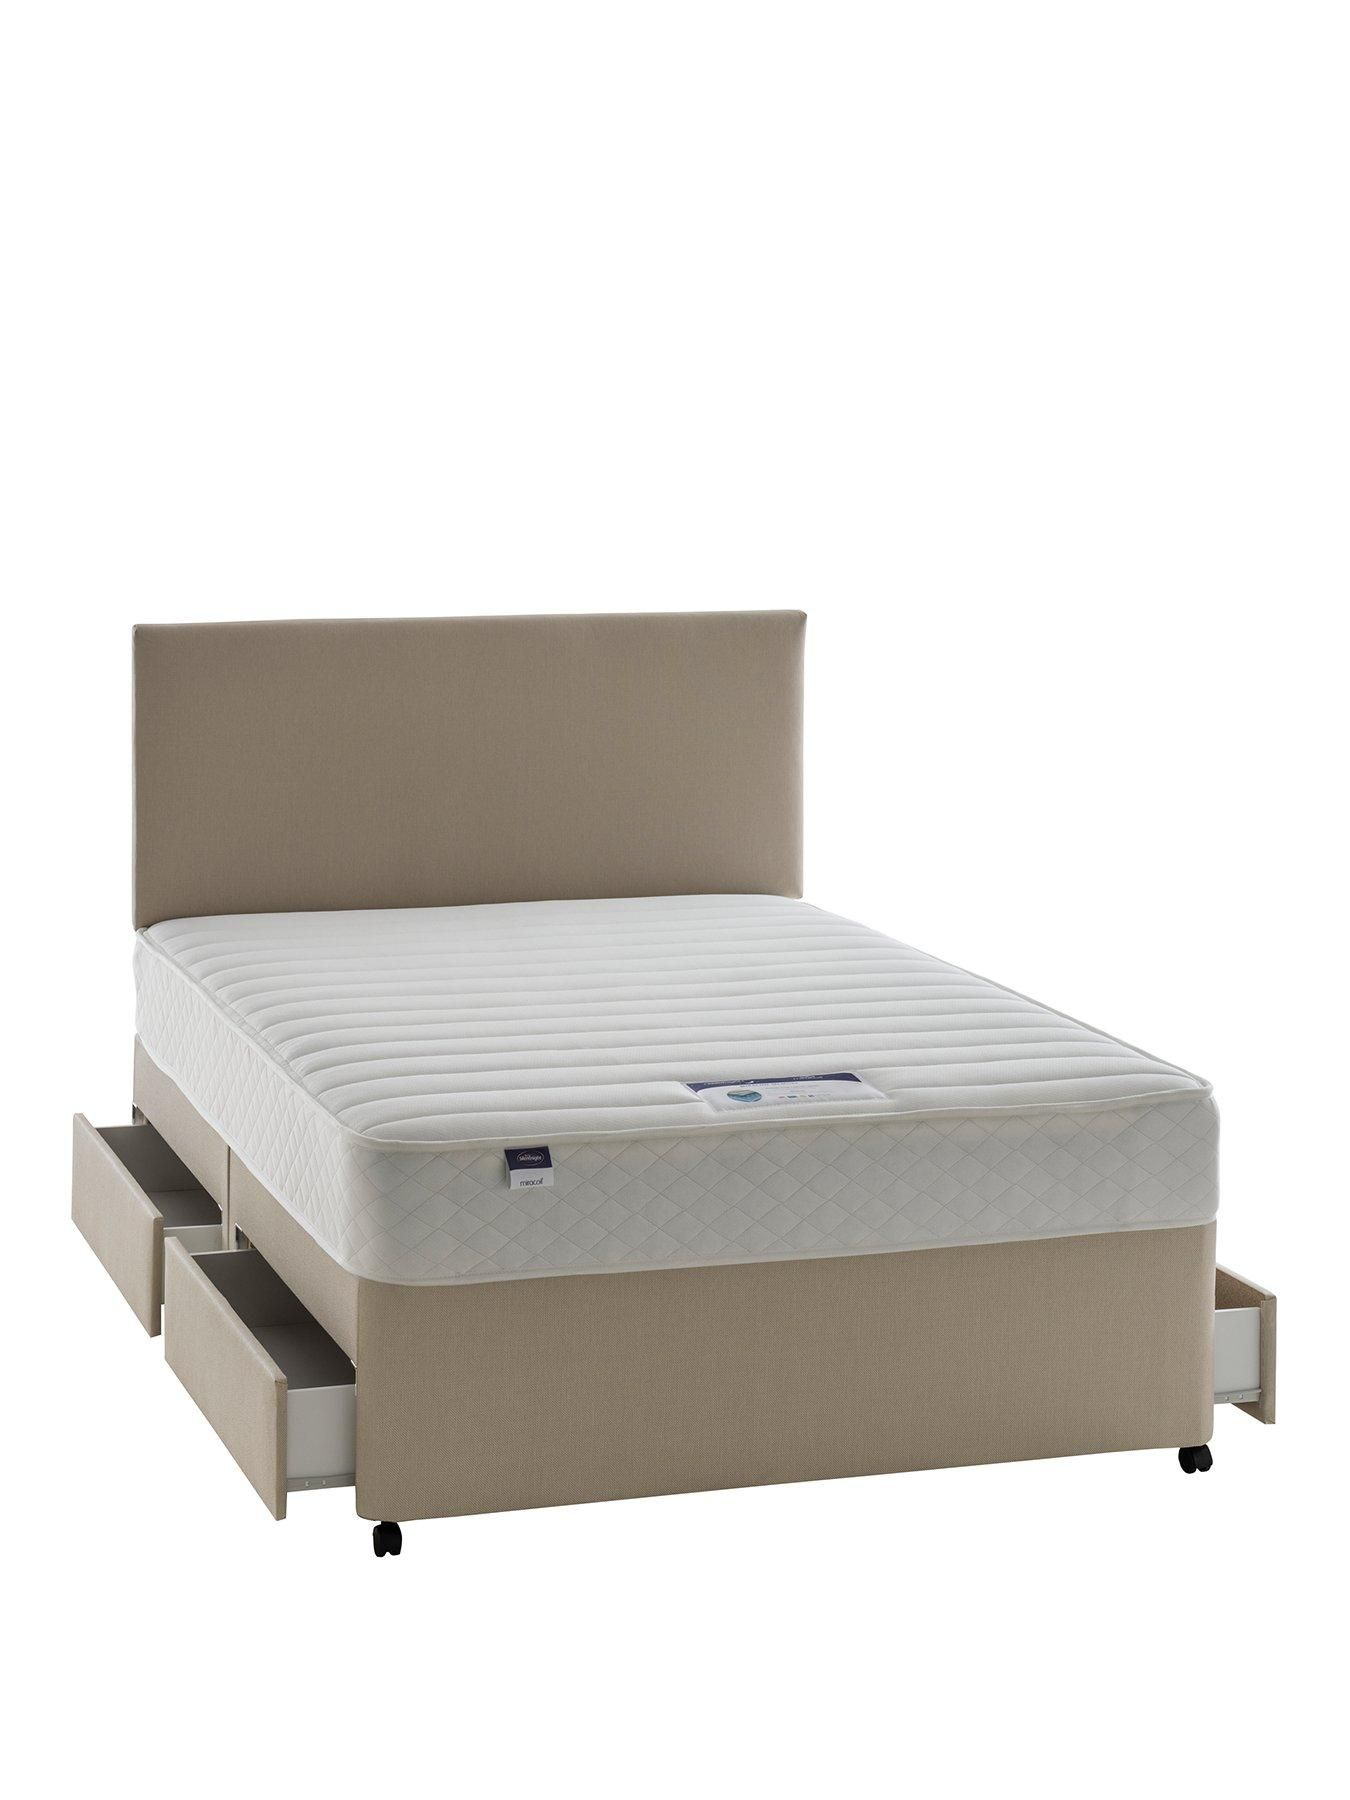 Silent Night Miracoil 3 Pillow Top Mattress Silentnight Miracoil 3 Celine Memory Divan With Optional Storage